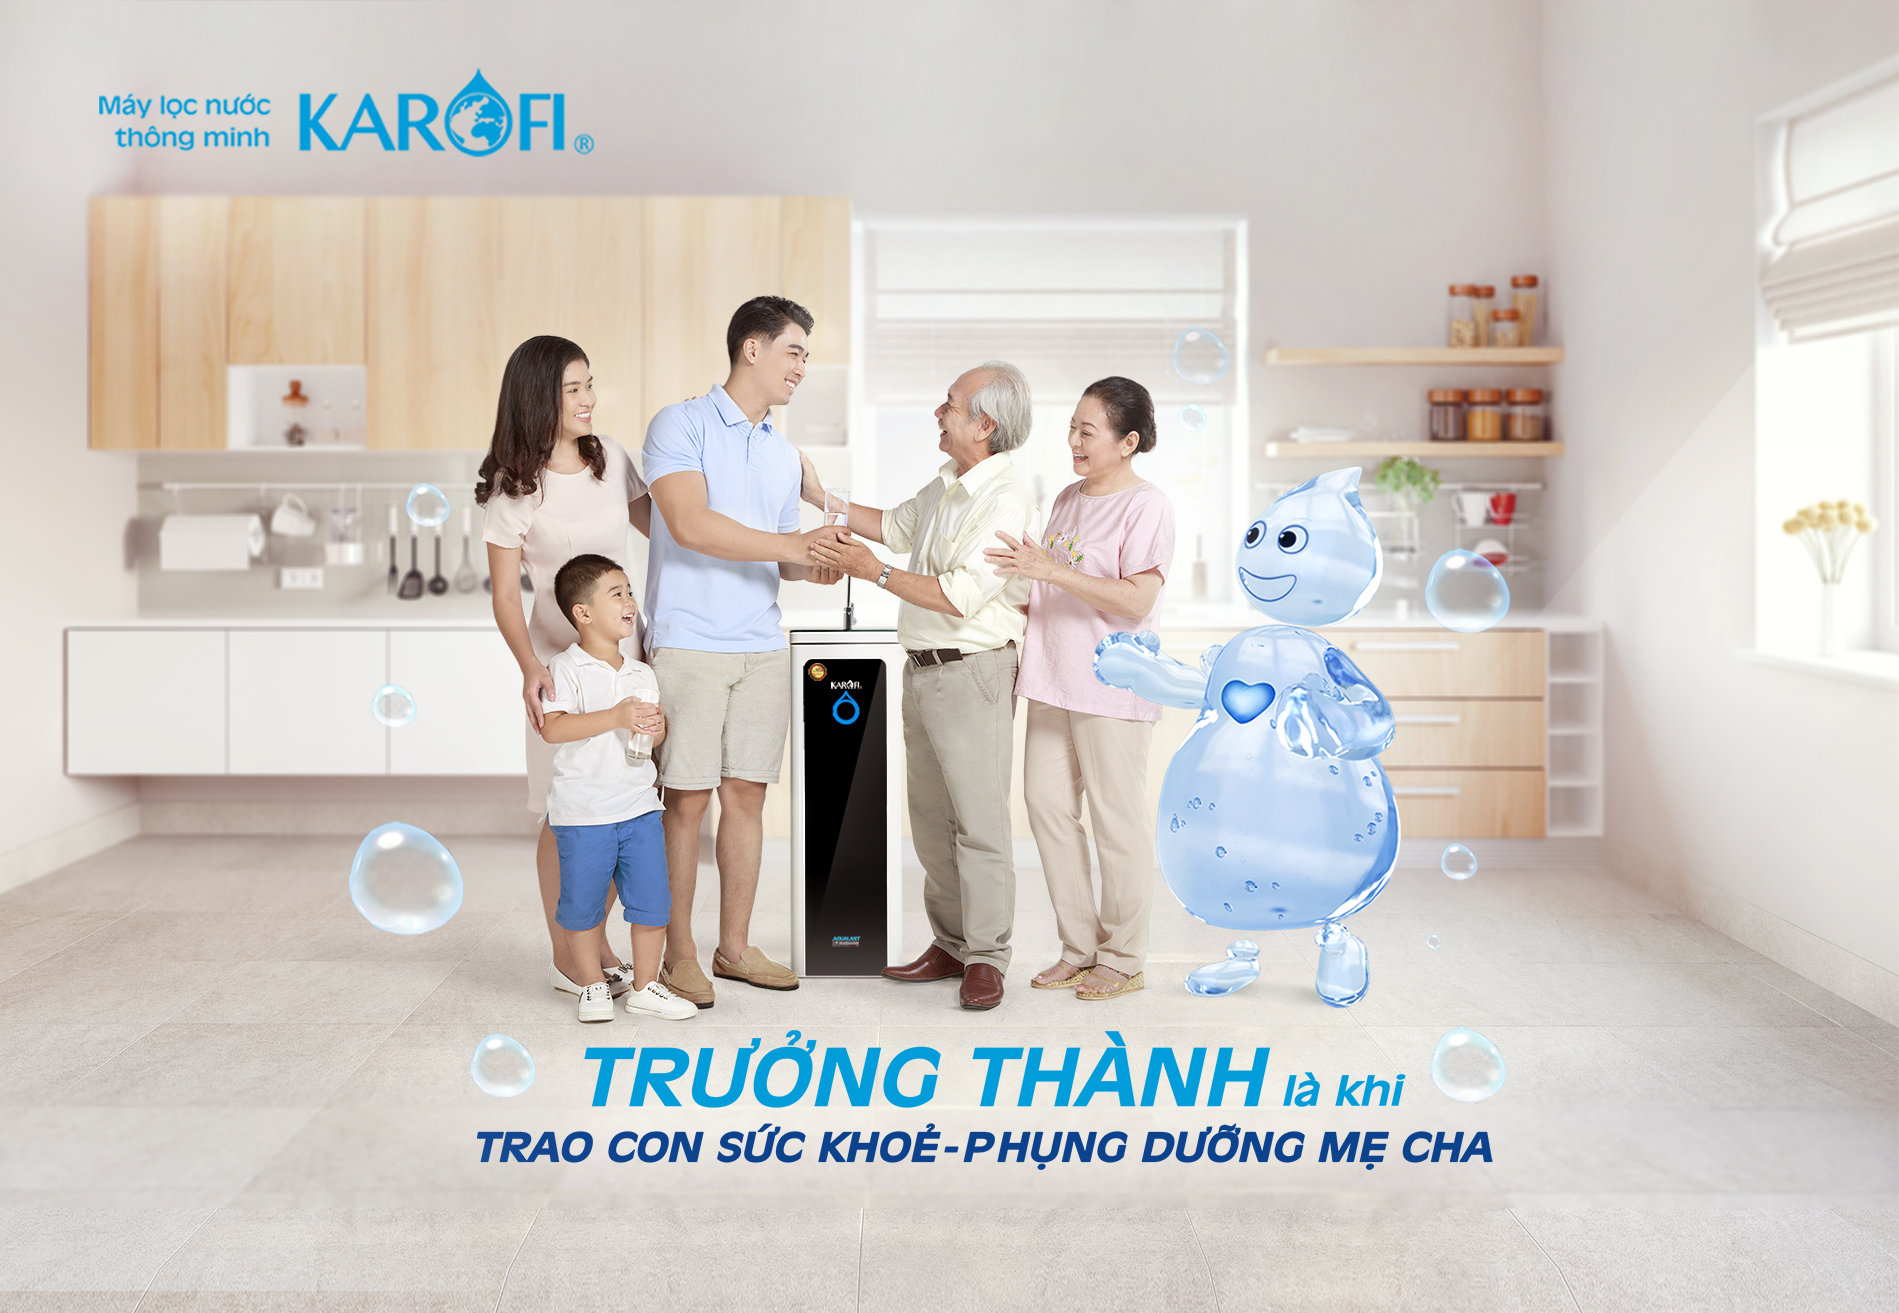 Cuoc thi nguoi truong thanh